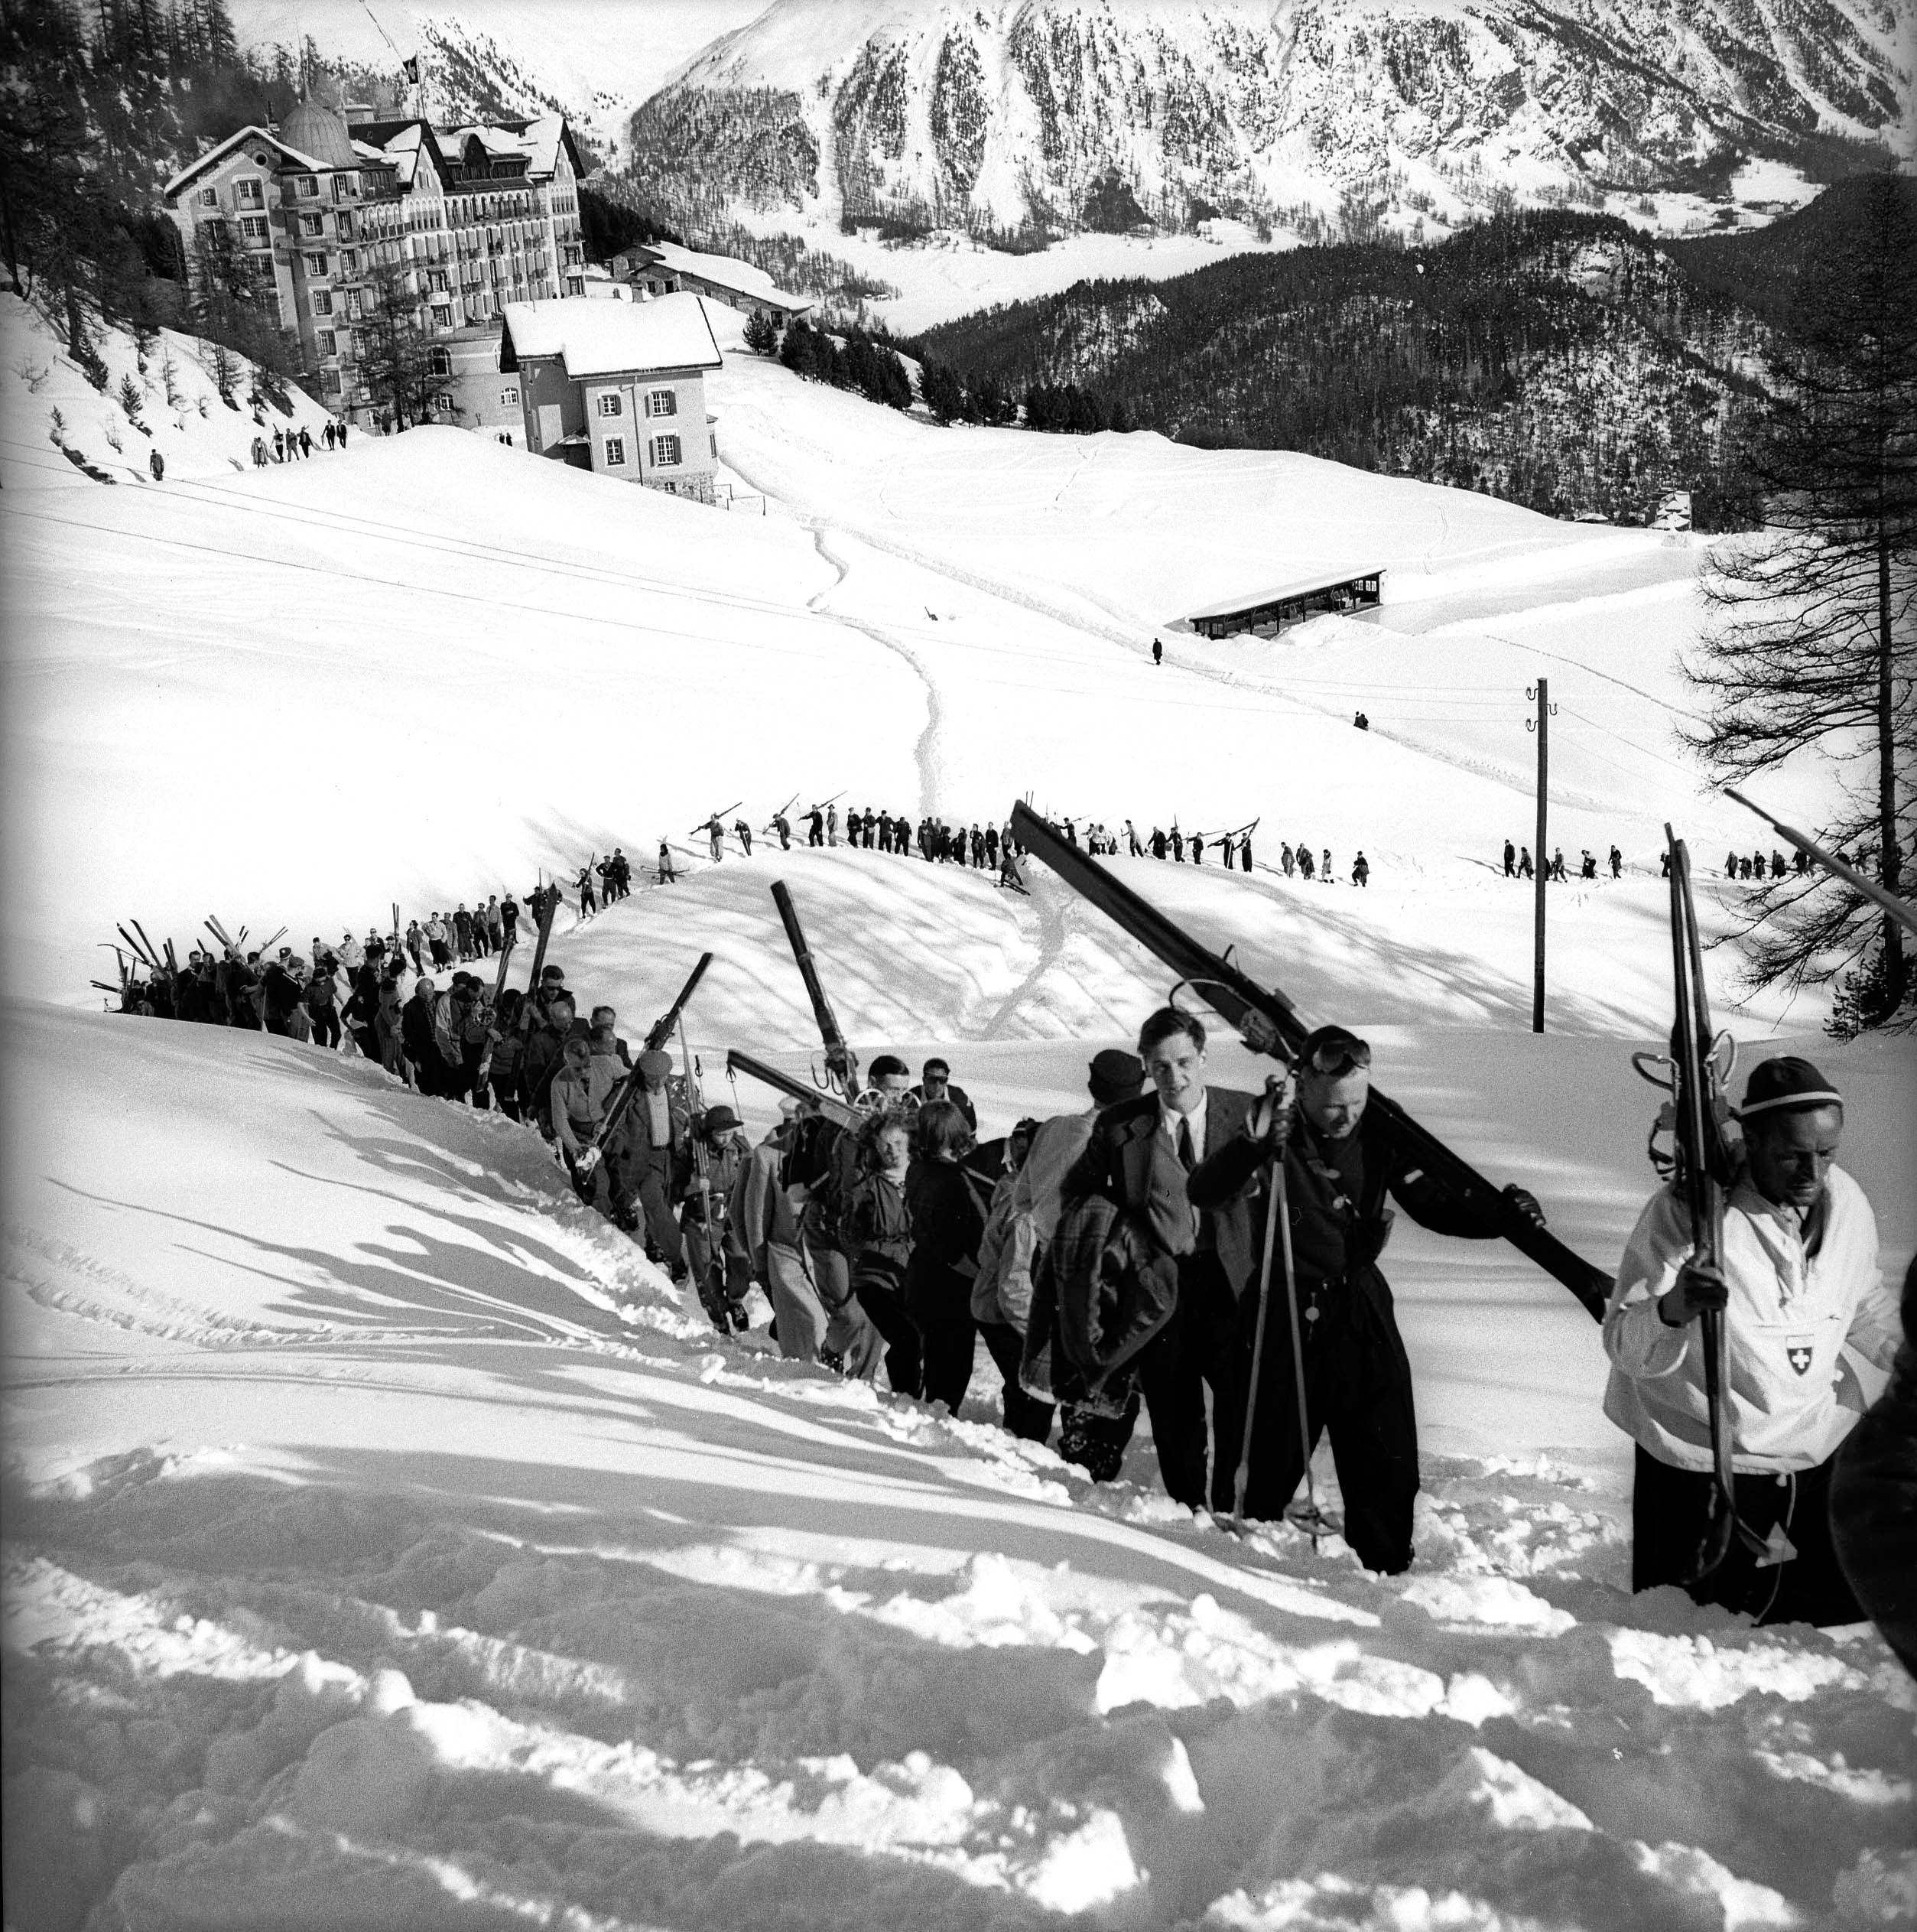 Procession of spectators and skiers.